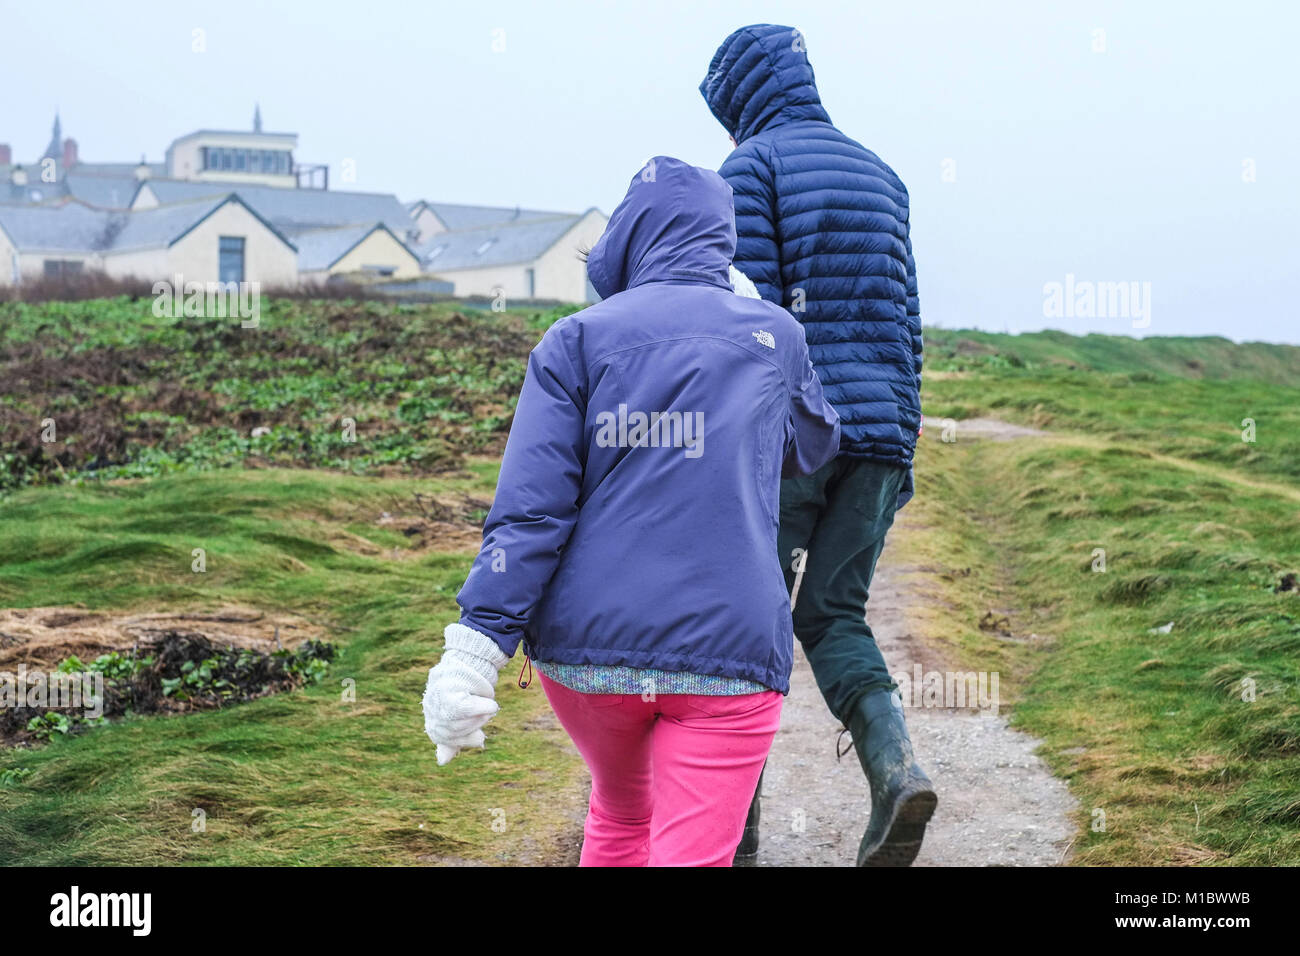 UK Winter weather - Two people walkers struggling to walk against high winds on the Newquay coast Cornwall. - Stock Image